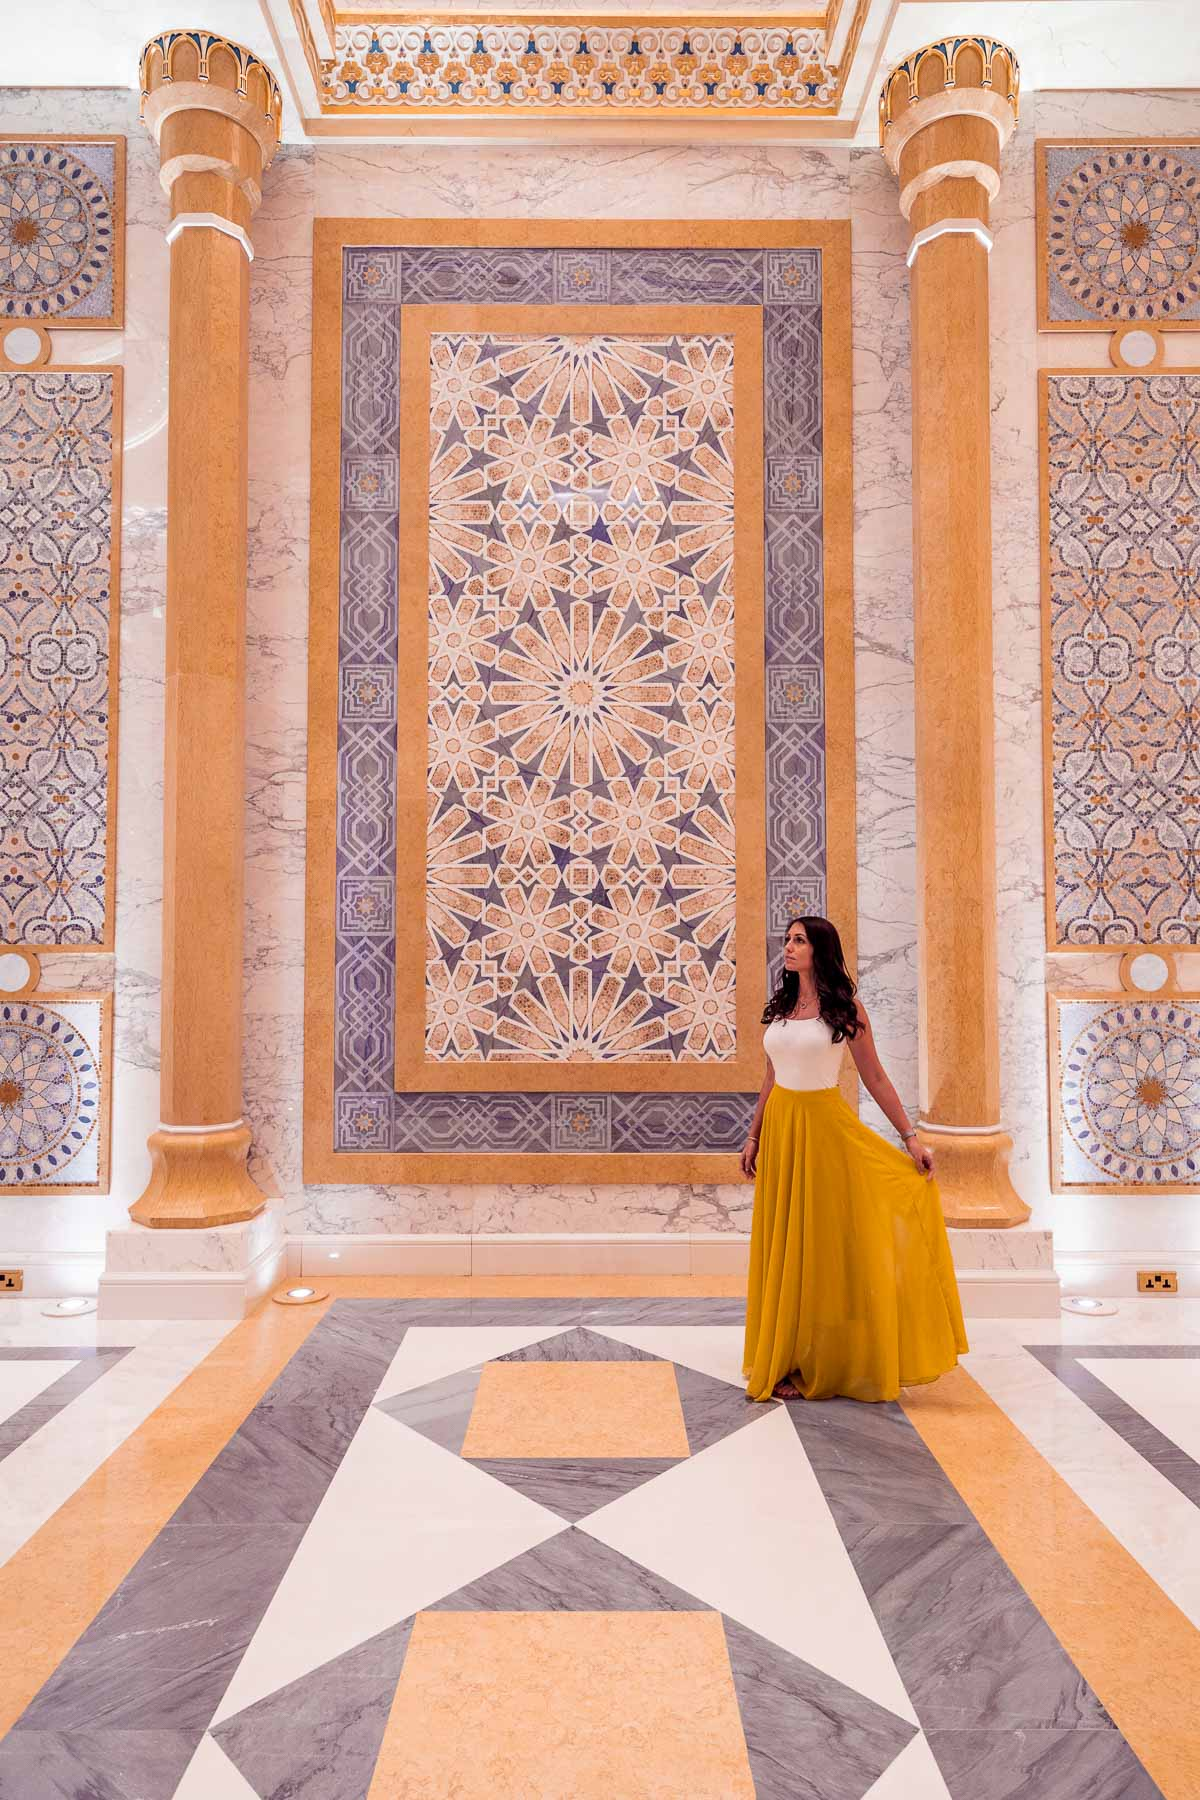 Girl in a yellow skirt standing in Qasr al Watan Palace, Abu Dhabi